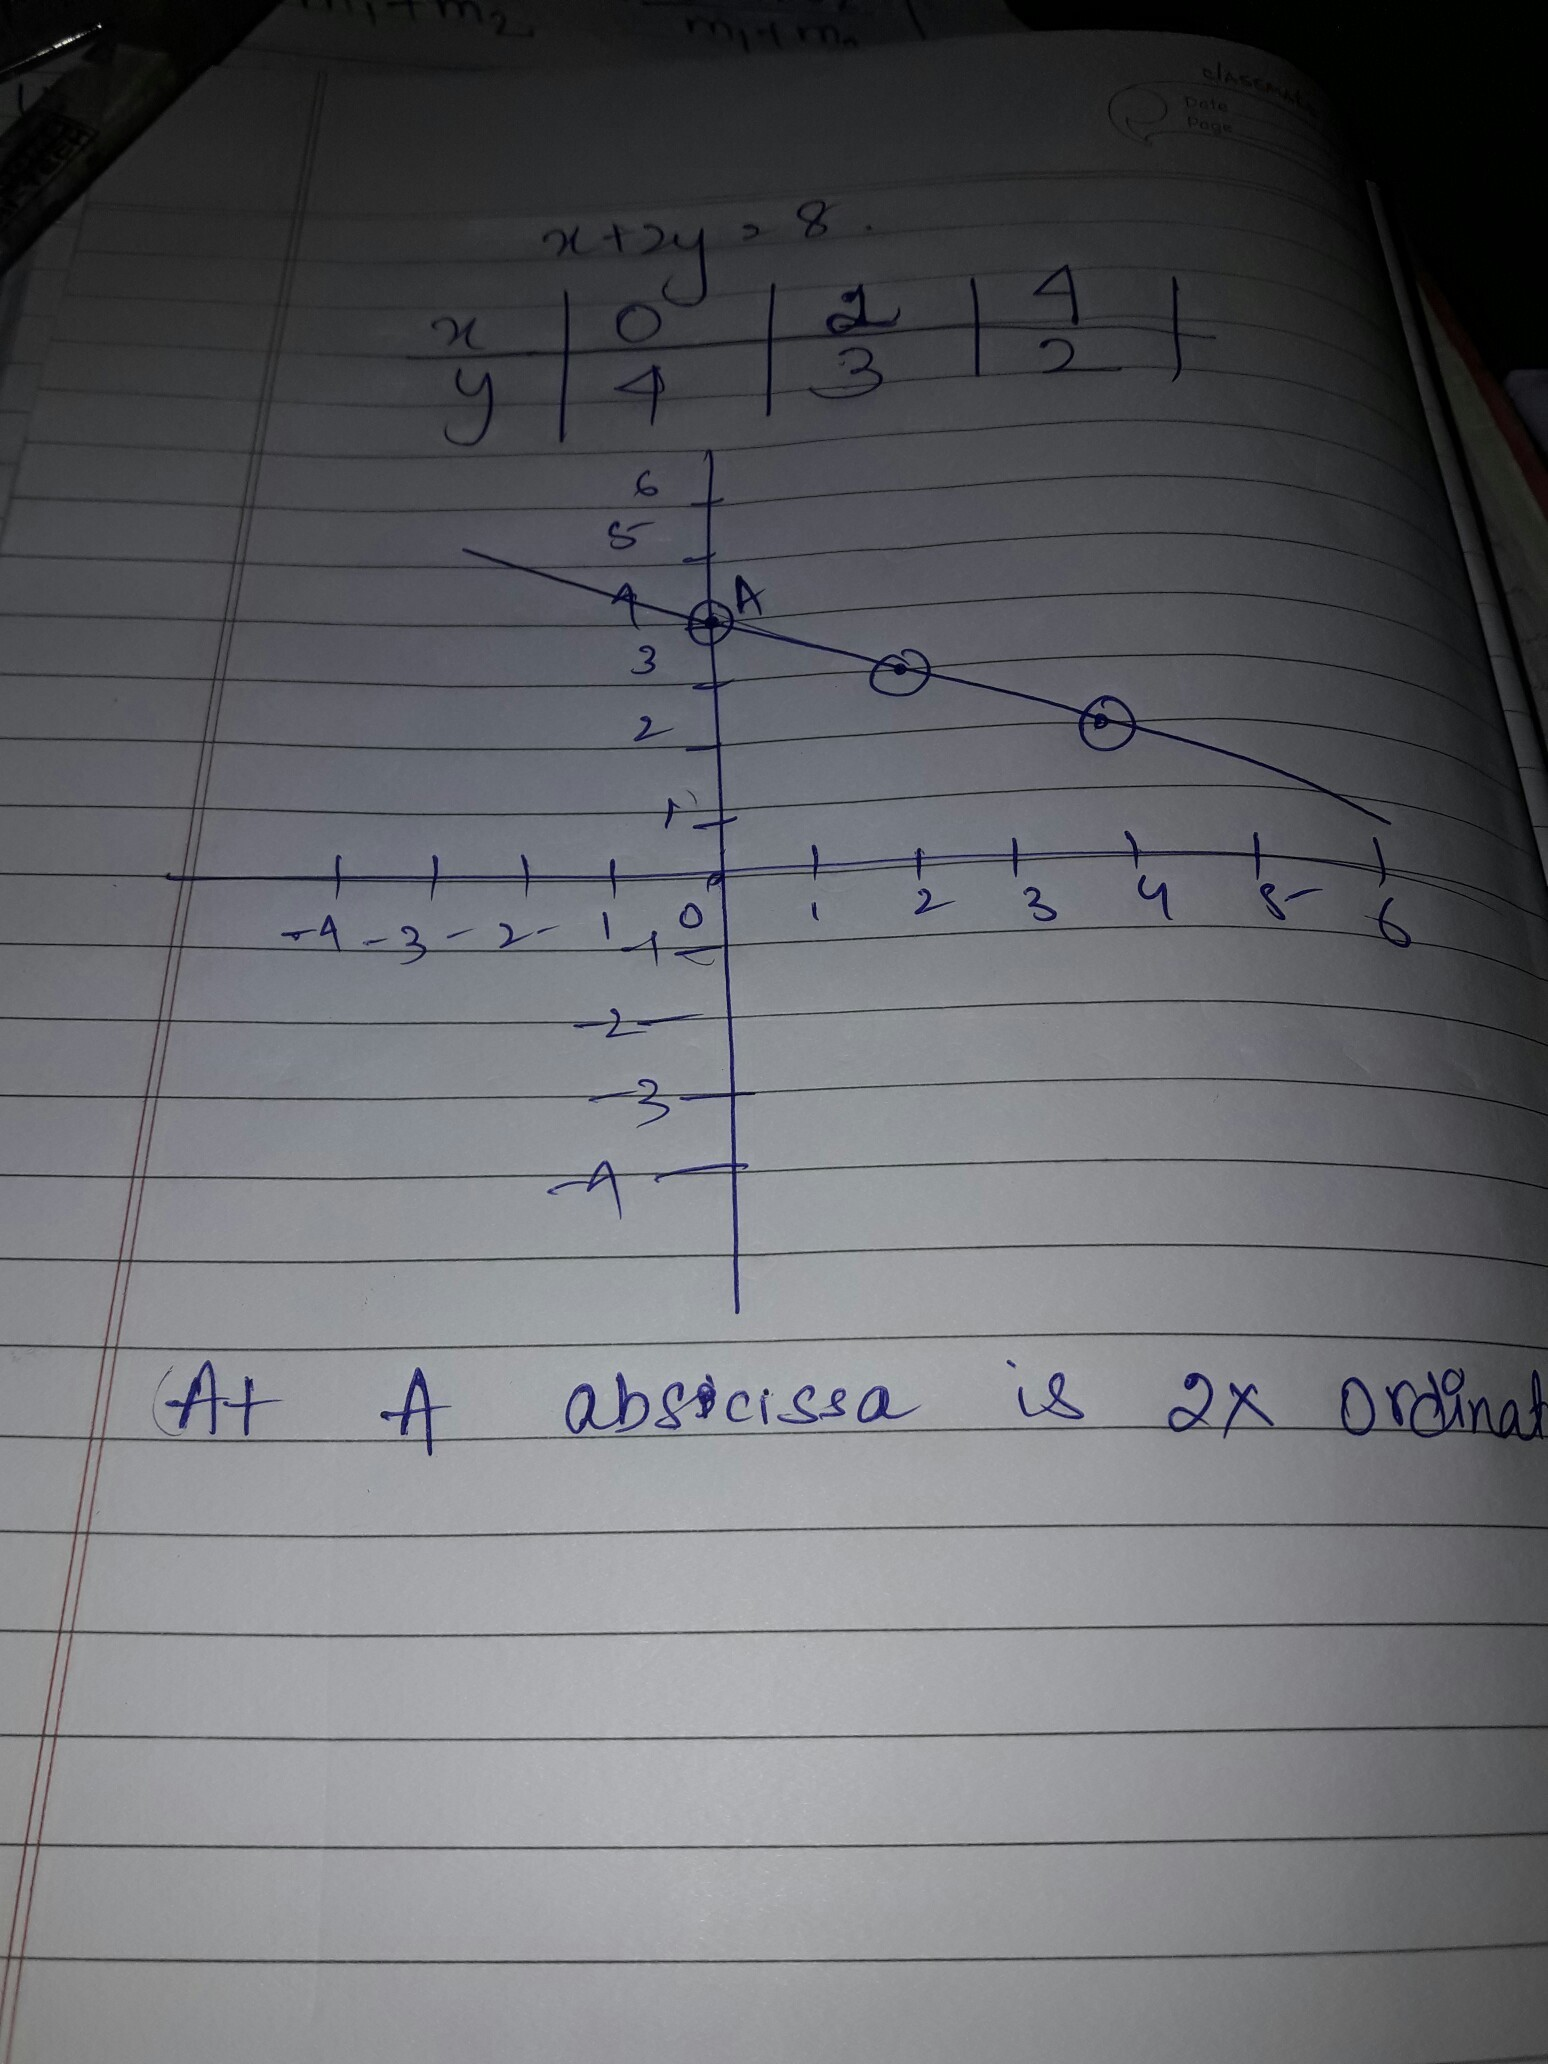 Draw a linear equation x+2y=8 and find the points on the graph where